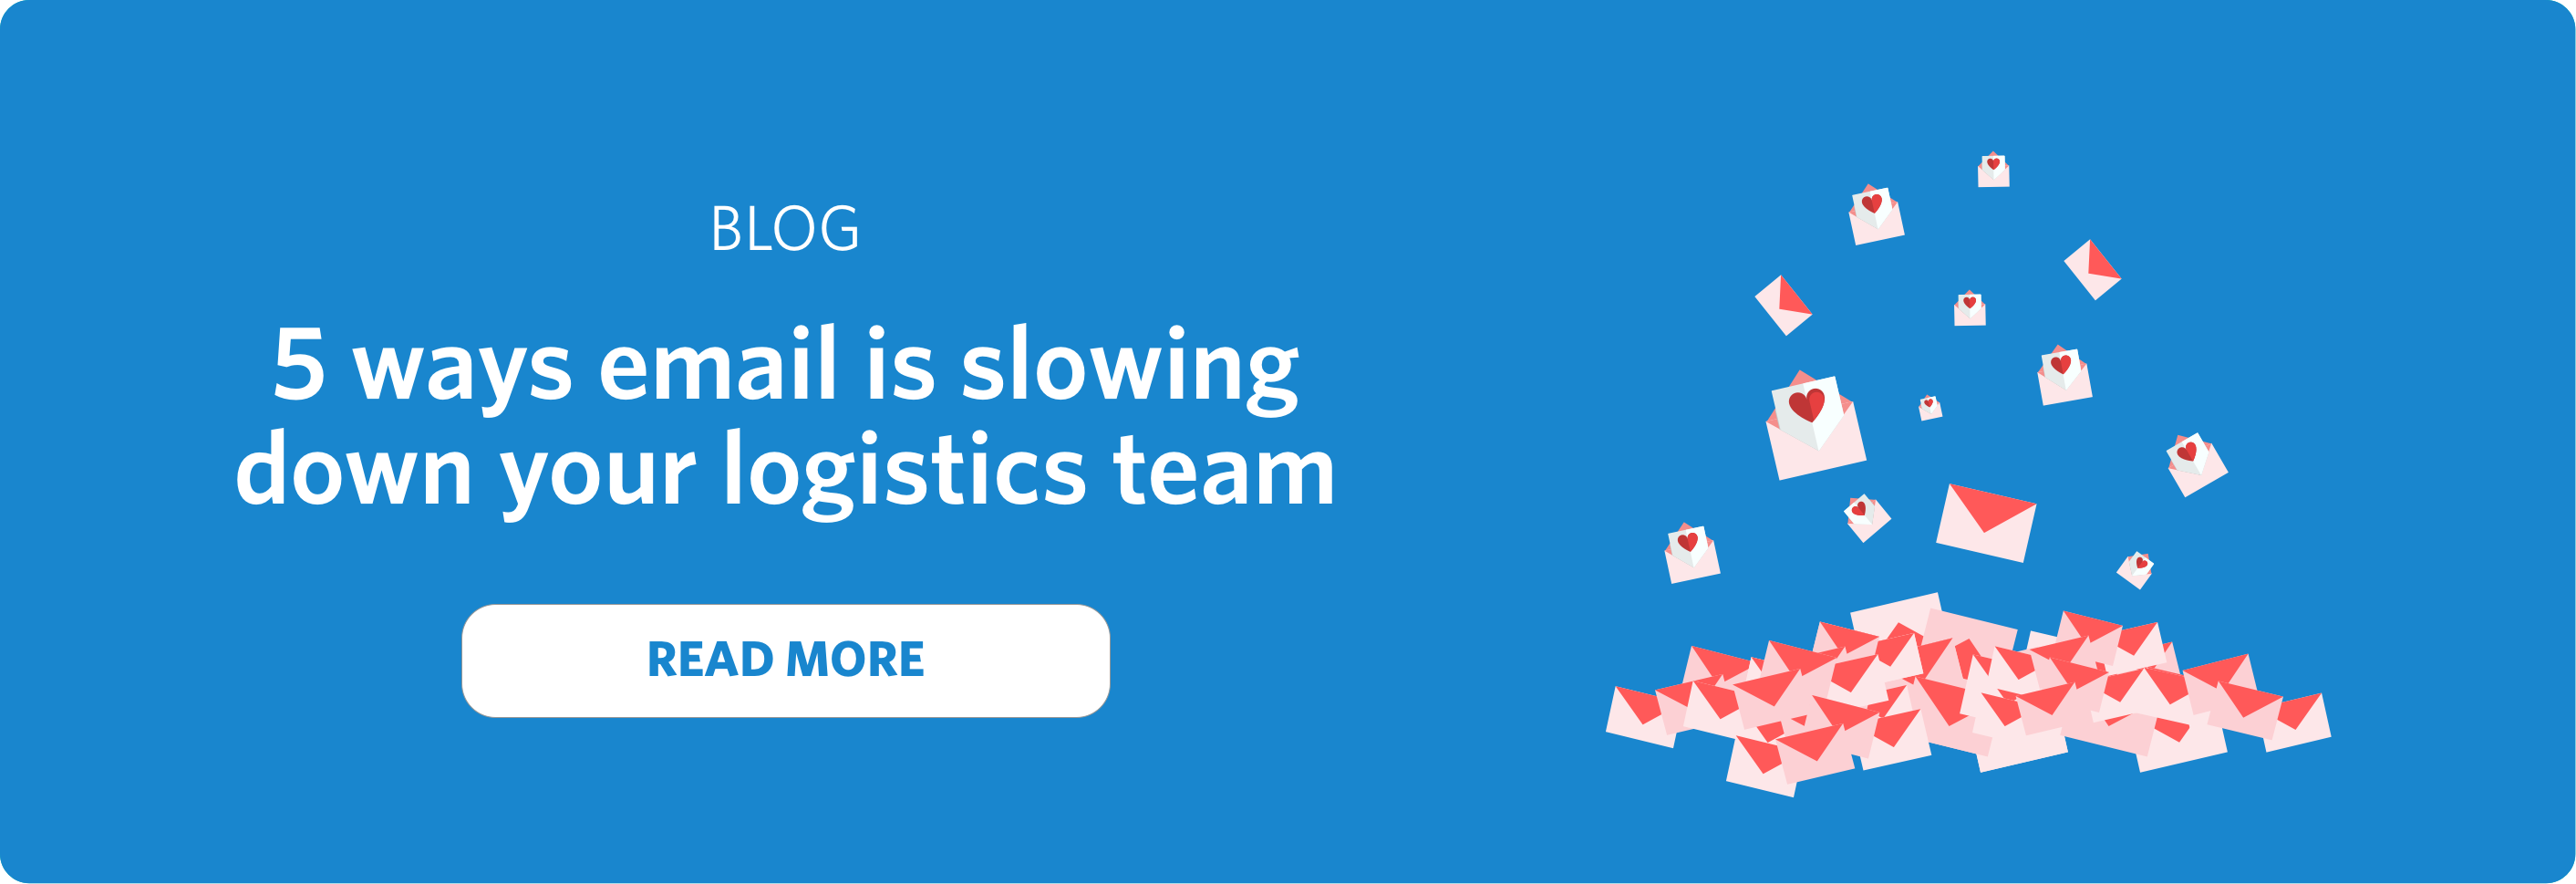 blog - 5 ways email is slowing down your logistics team